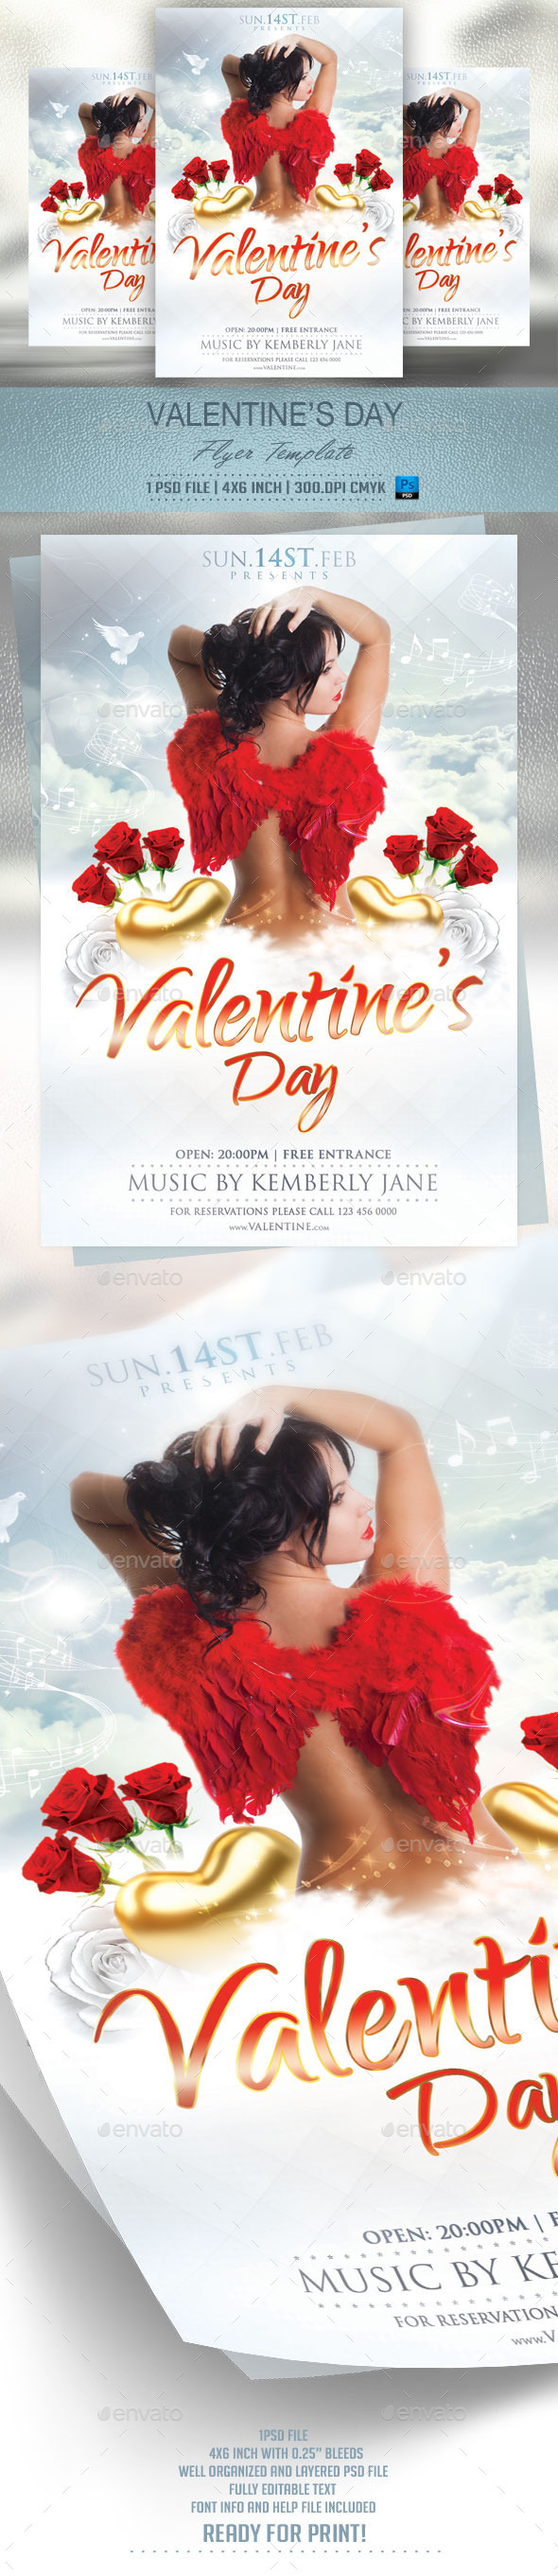 Valentines Day Flyer Template v2 - Events Flyers